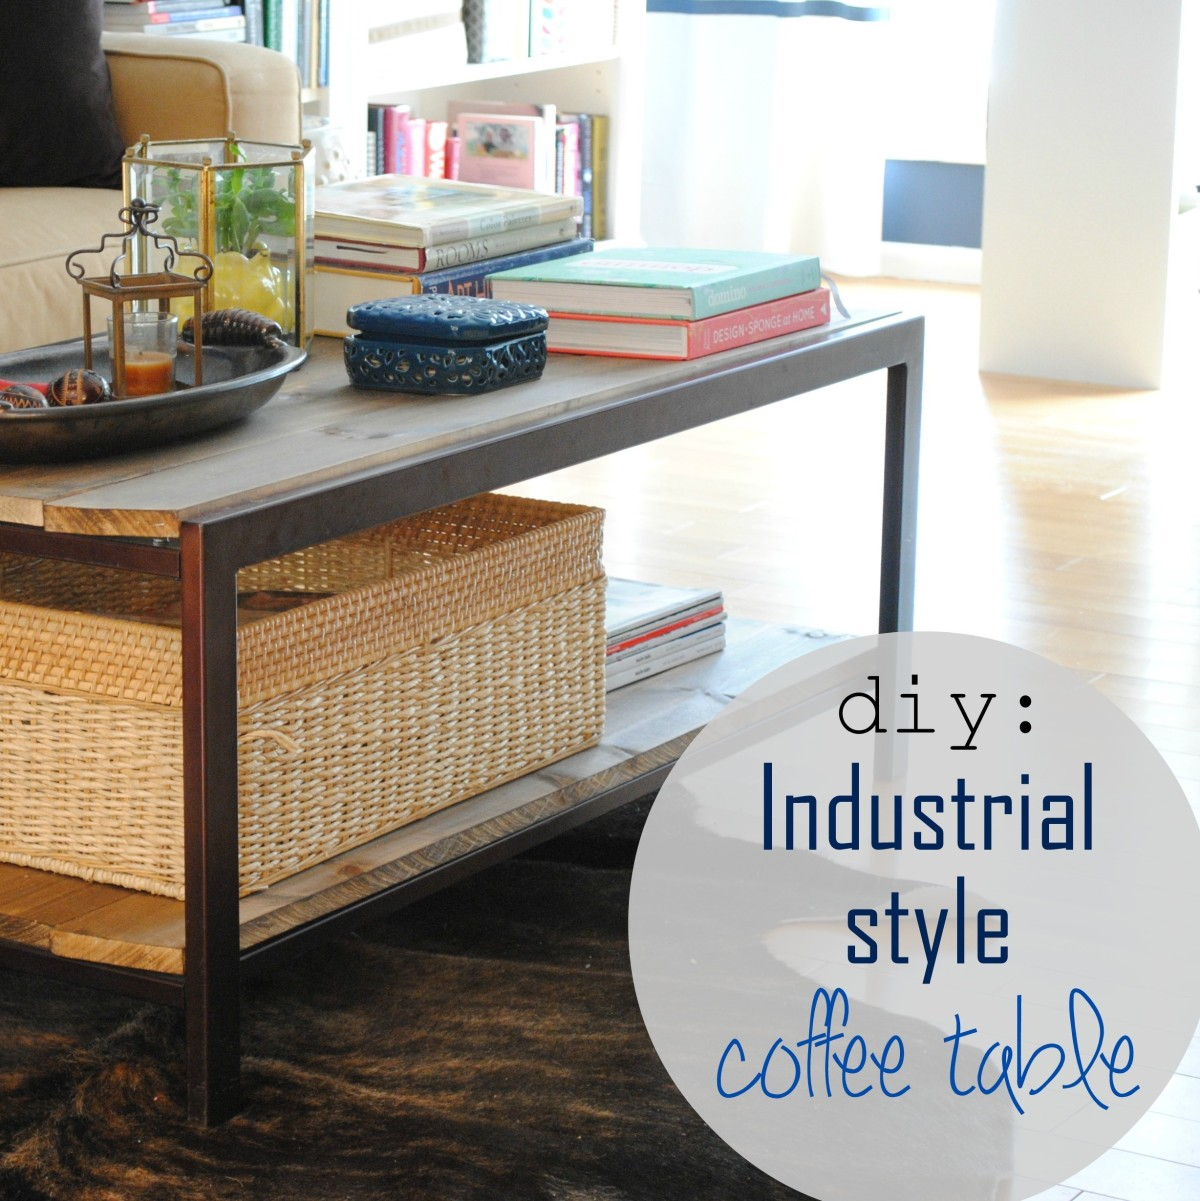 Large Coffee Table Industrial Style: DIY: Modern To Industrial-Style Coffee Table